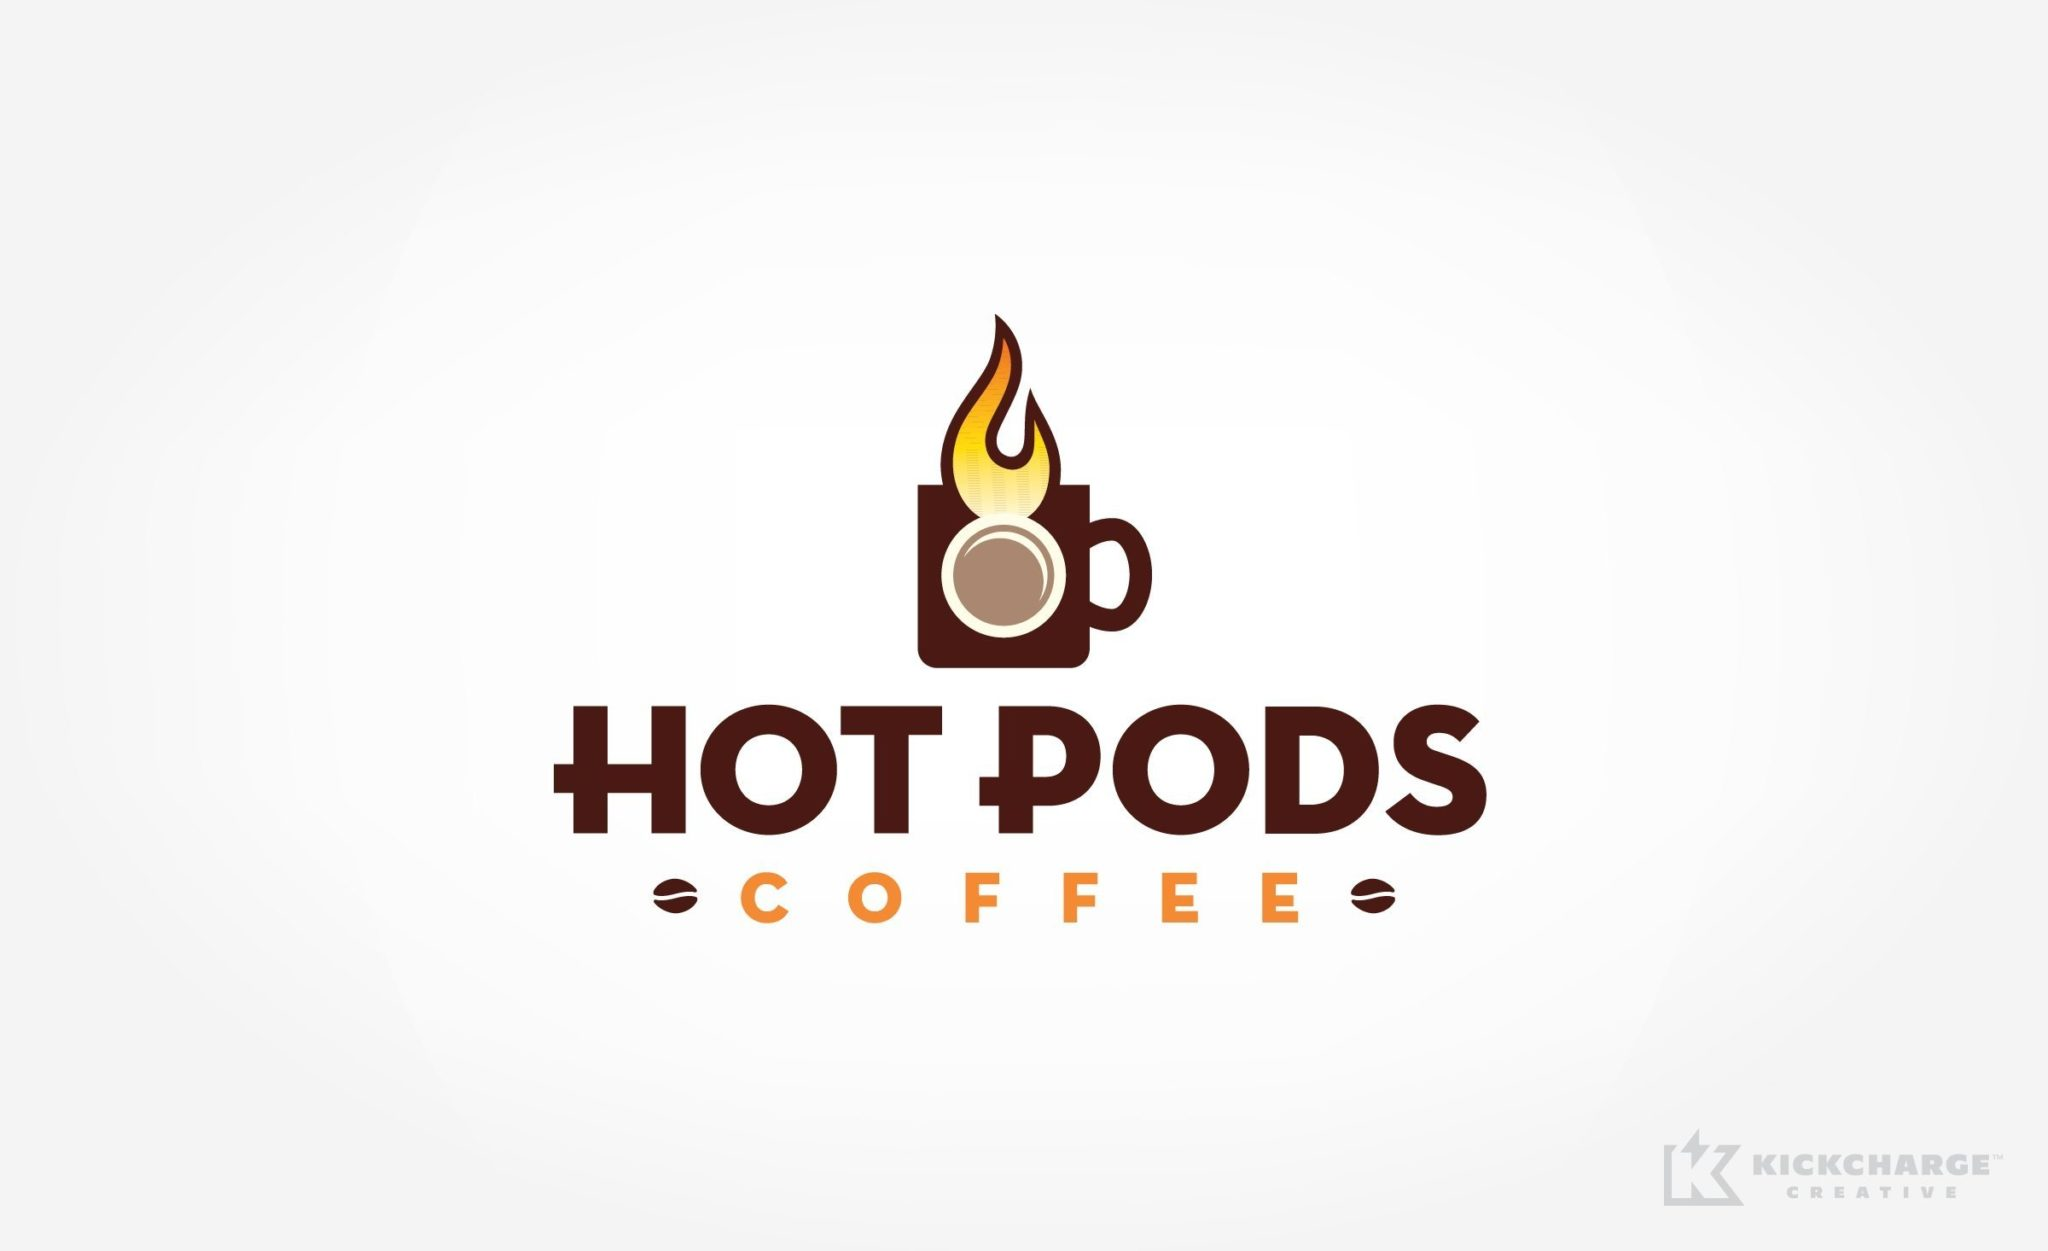 Pods Quote Hot Pods Coffee  Kickcharge Creative  Kickcharge